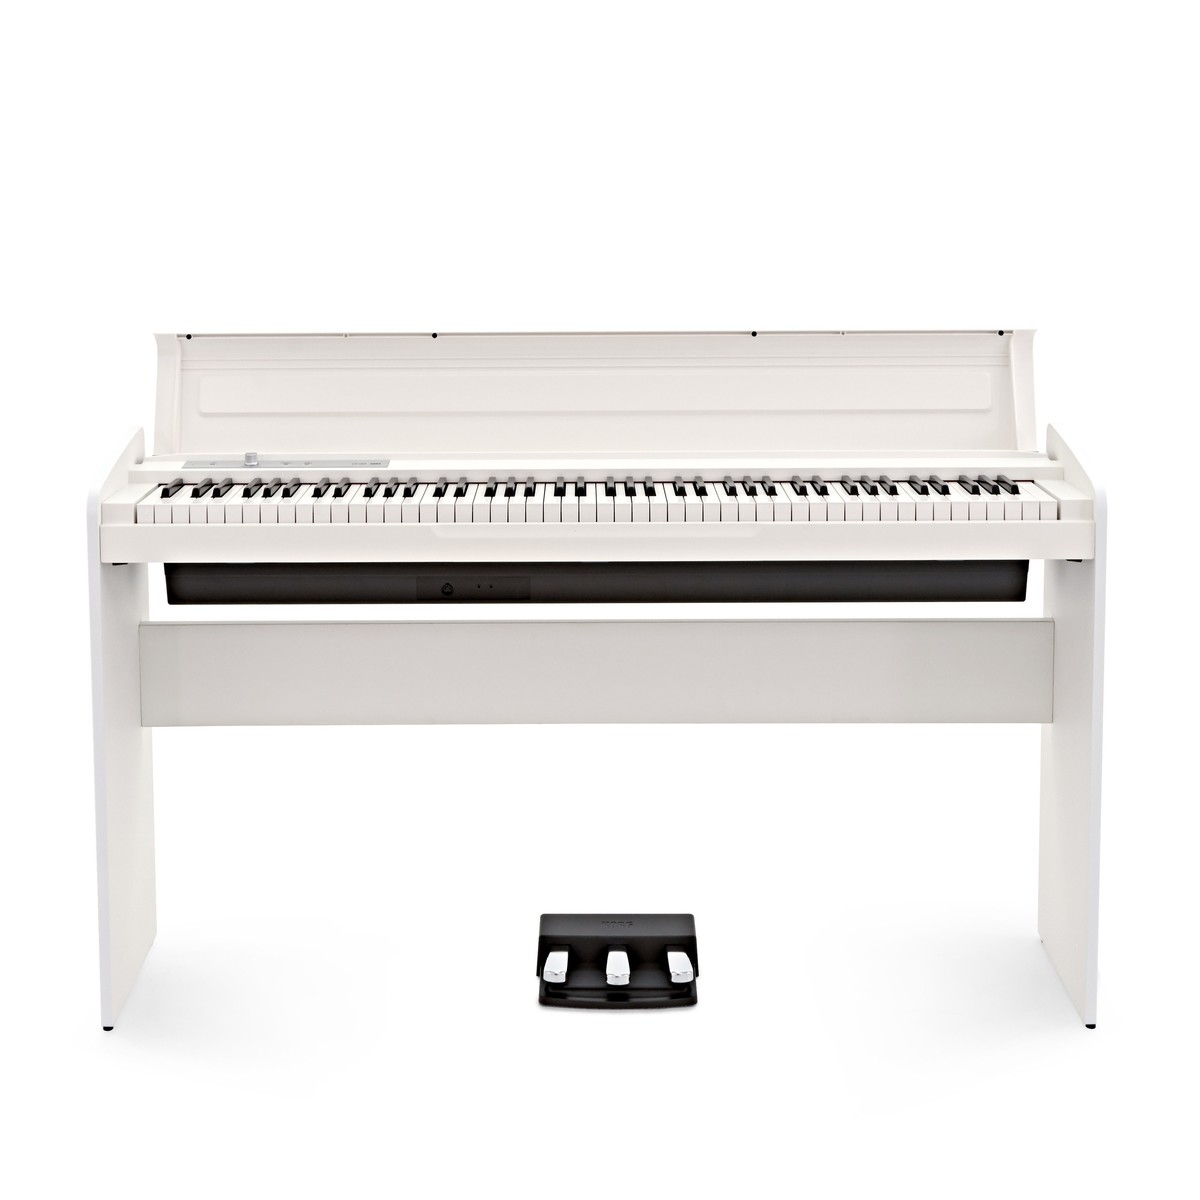 Korg Lp 180 Digital Piano White With Stool Headphones